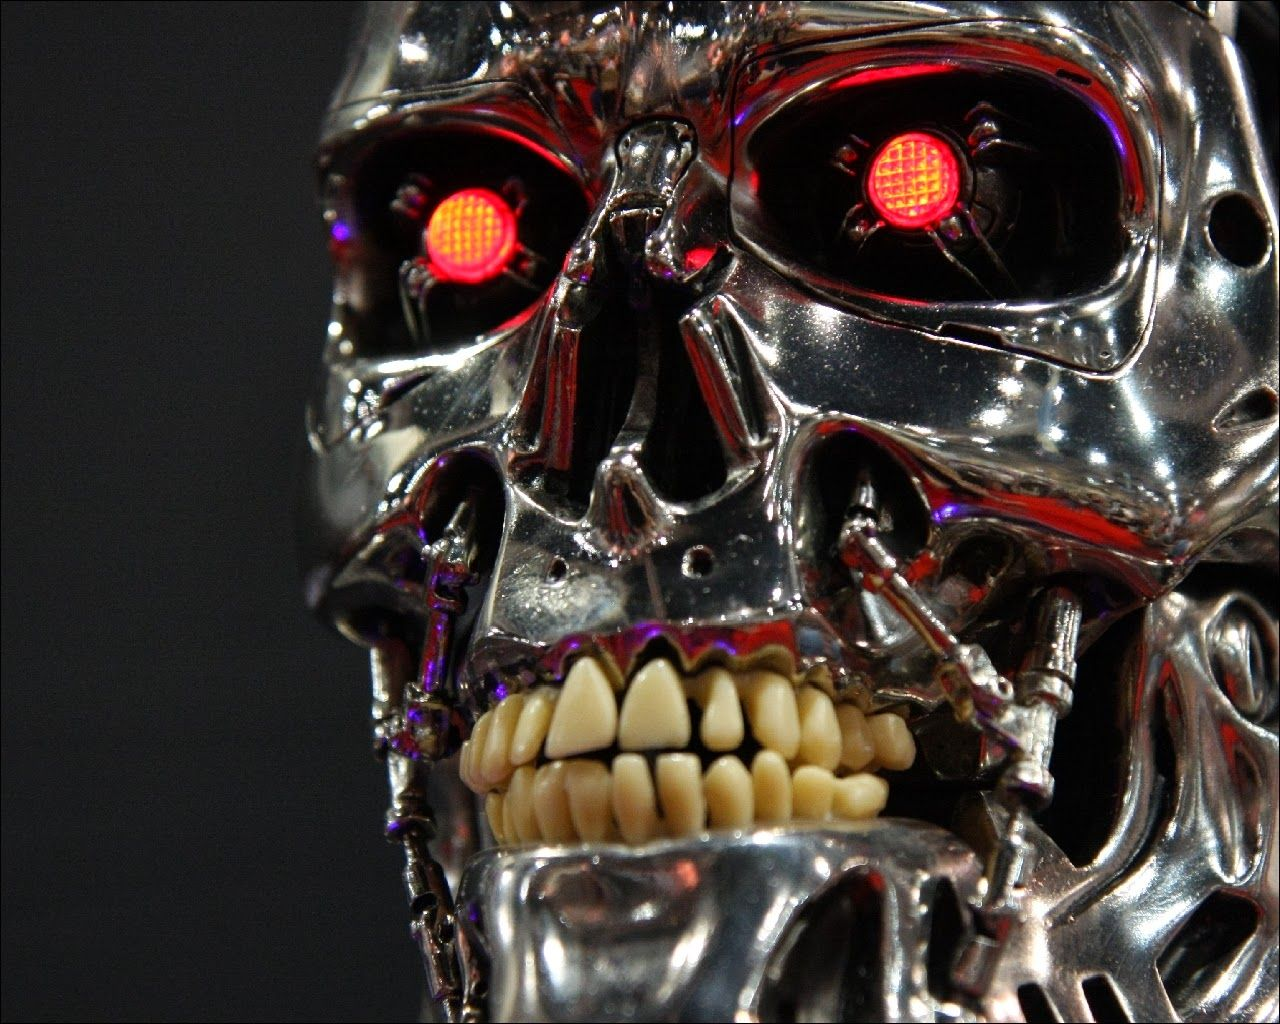 scary robot face - Google Search | Character Design ...